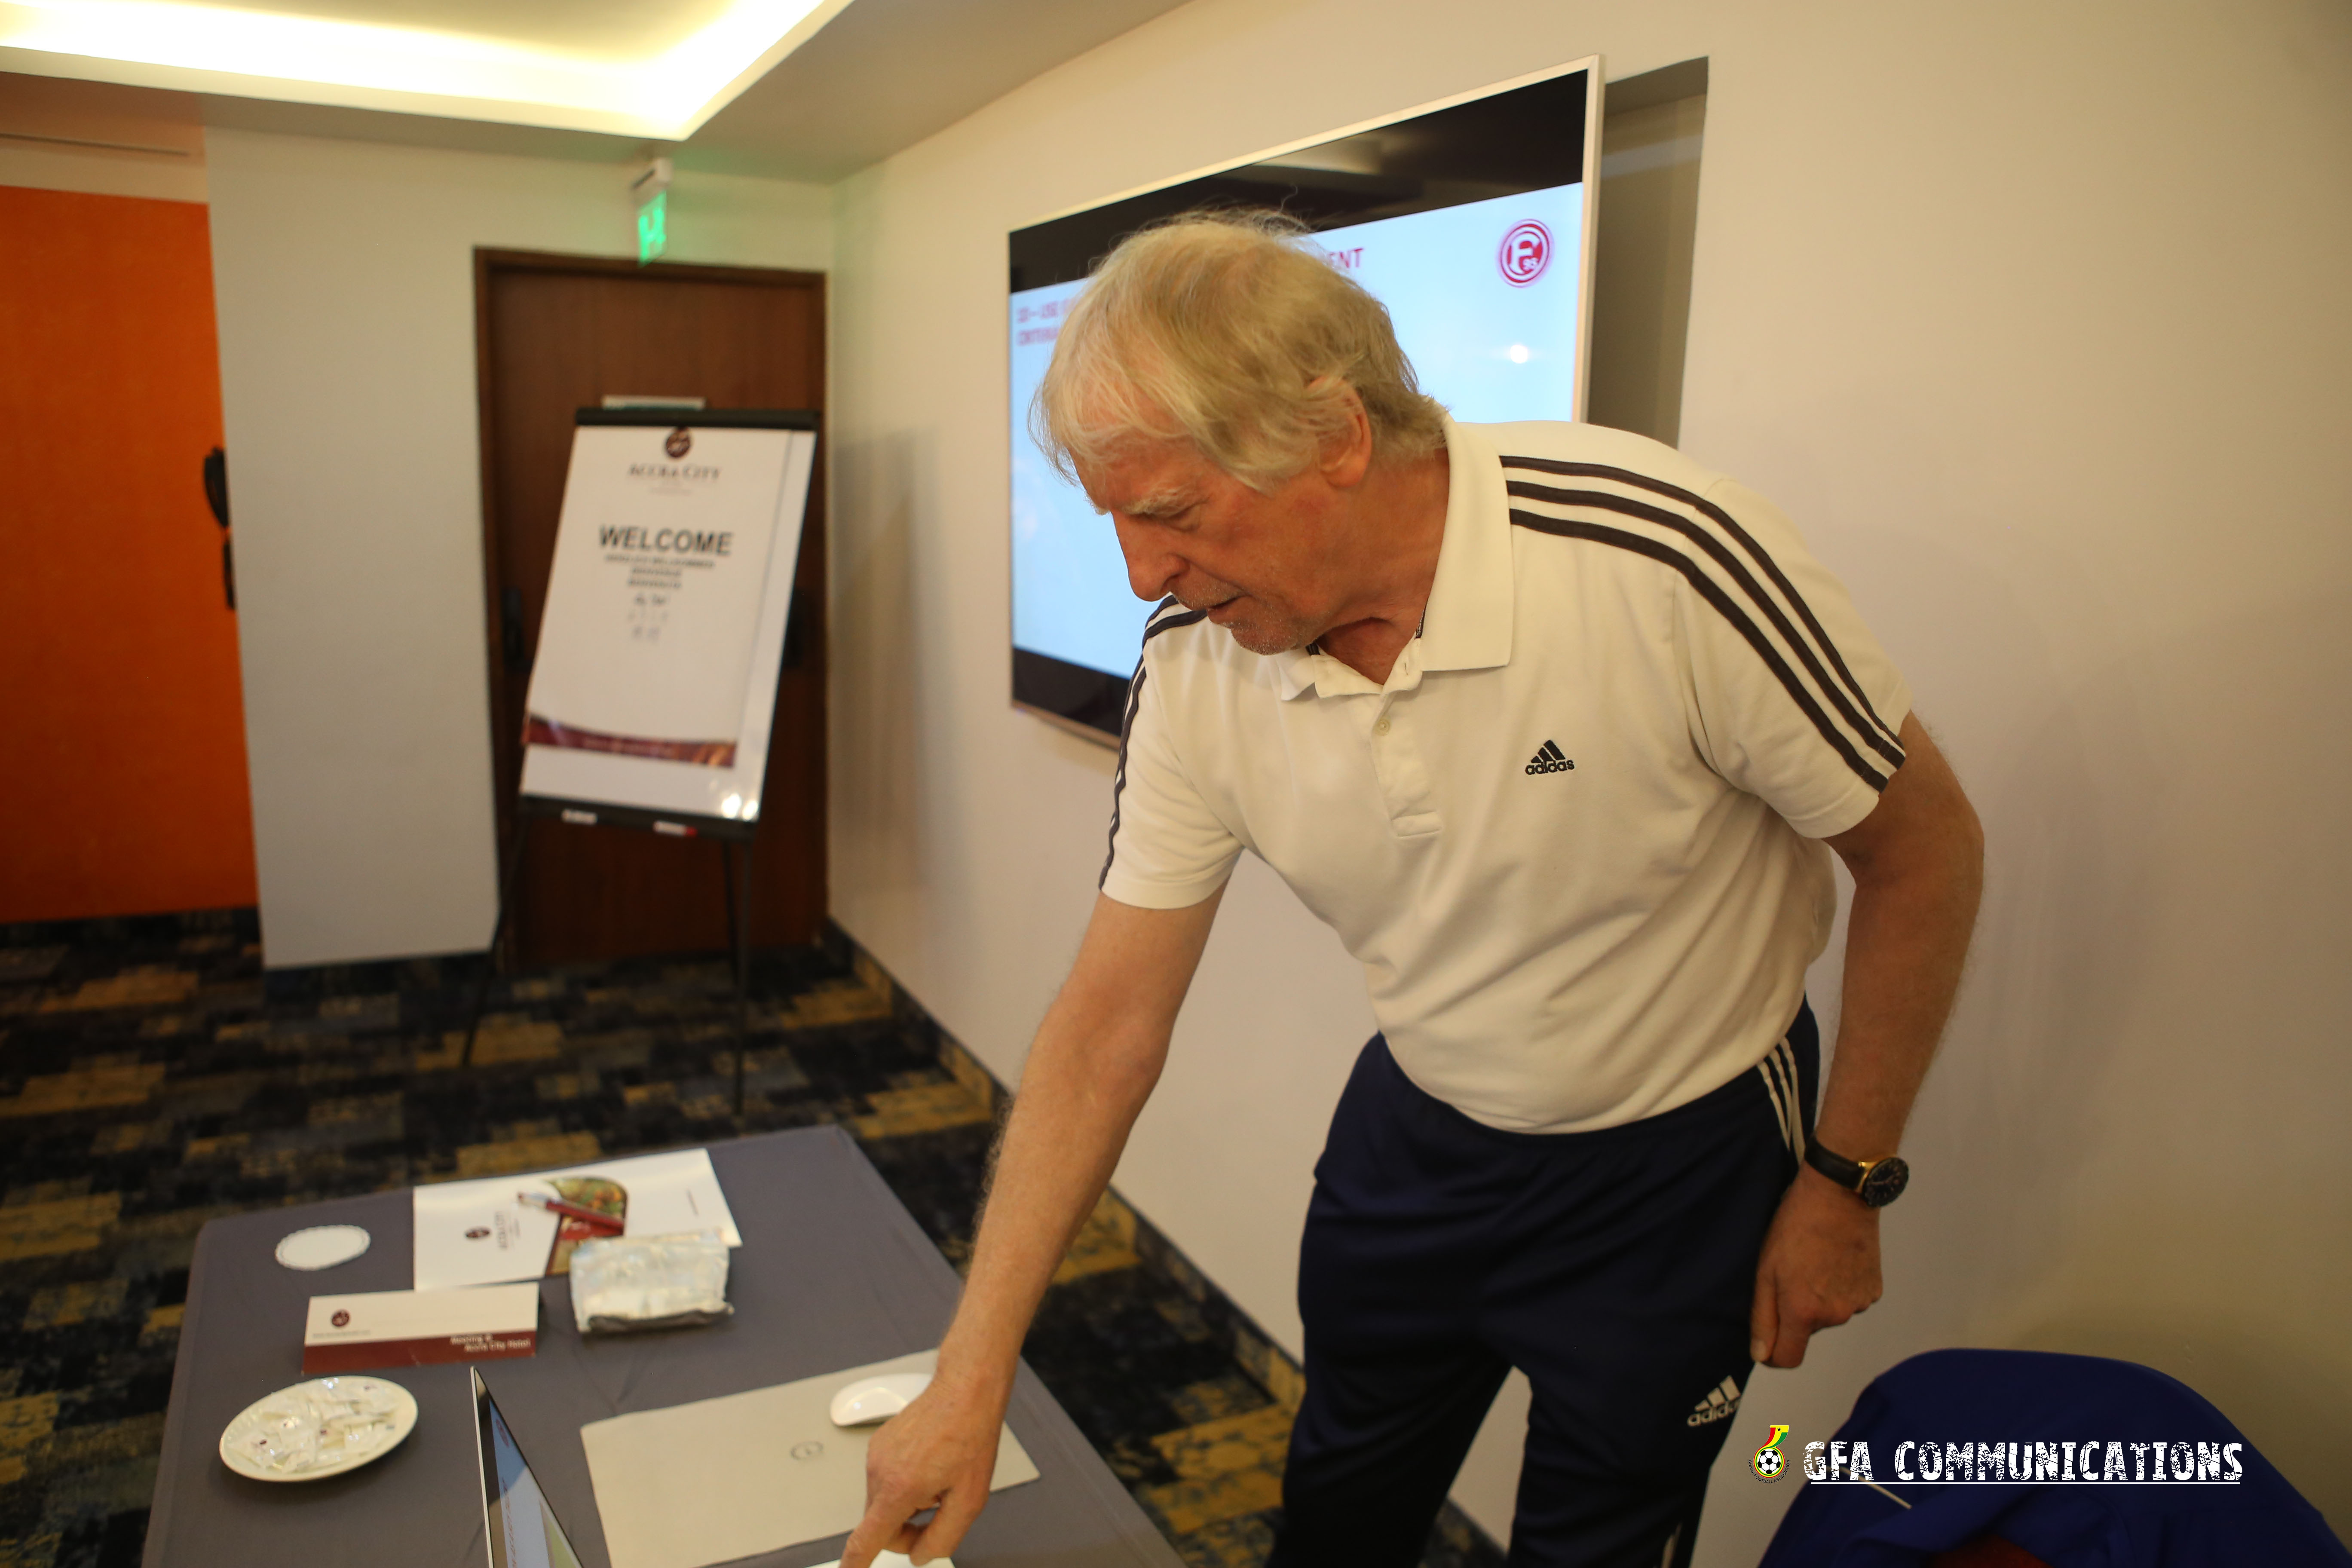 IMG 7227 - Ghana FA Opens One Week Refresher Course For Male National Team Coaches